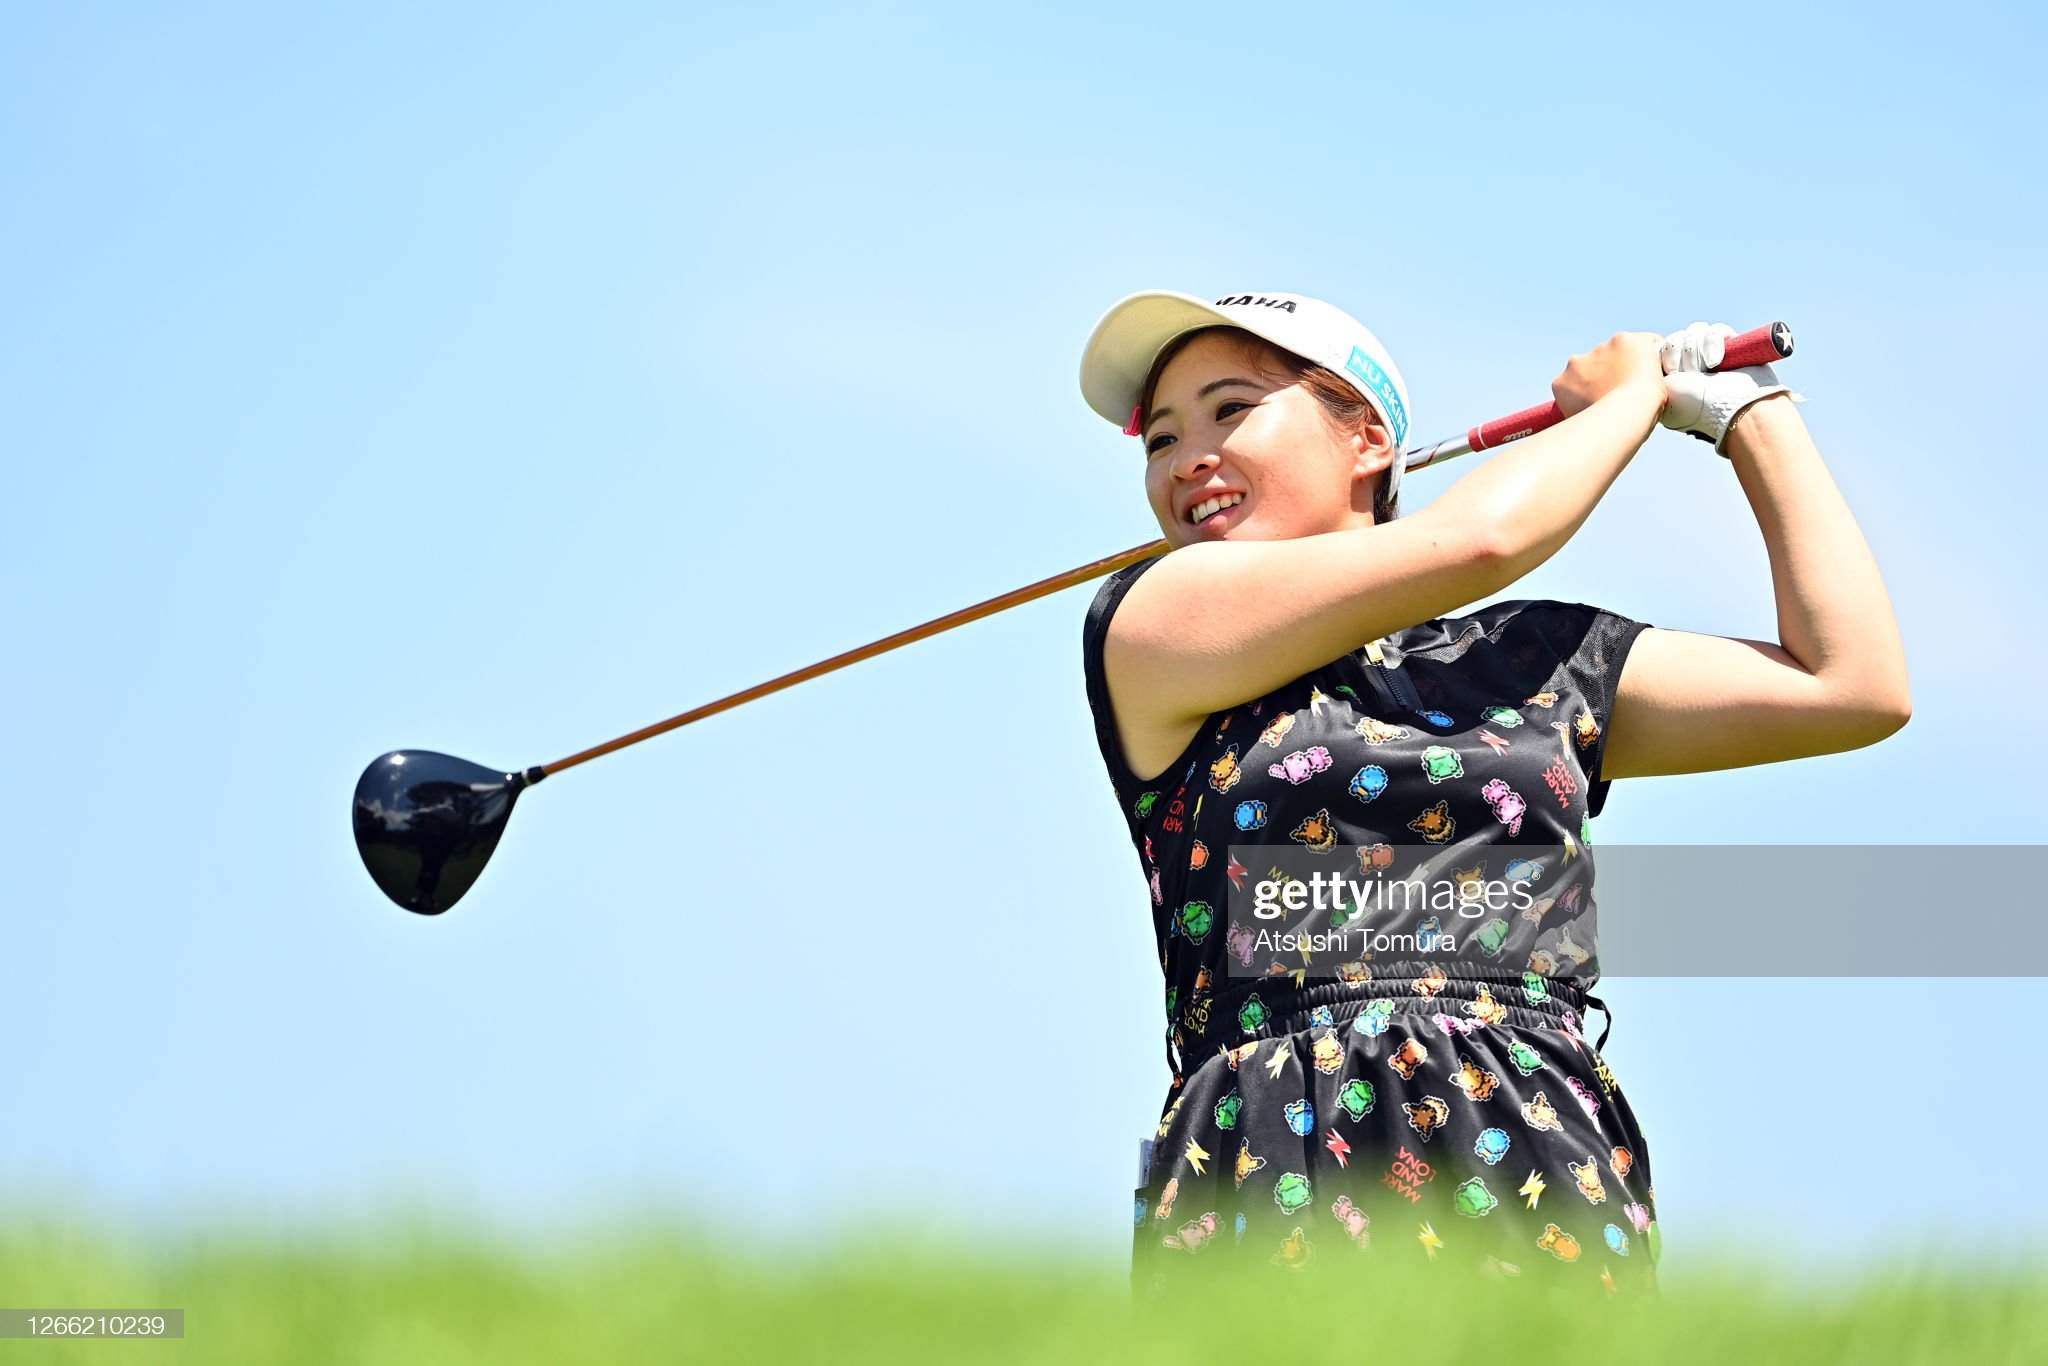 https://media.gettyimages.com/photos/kana-nagai-of-japan-hits-her-tee-shot-on-the-9th-hole-during-the-of-picture-id1266210239?s=2048x2048